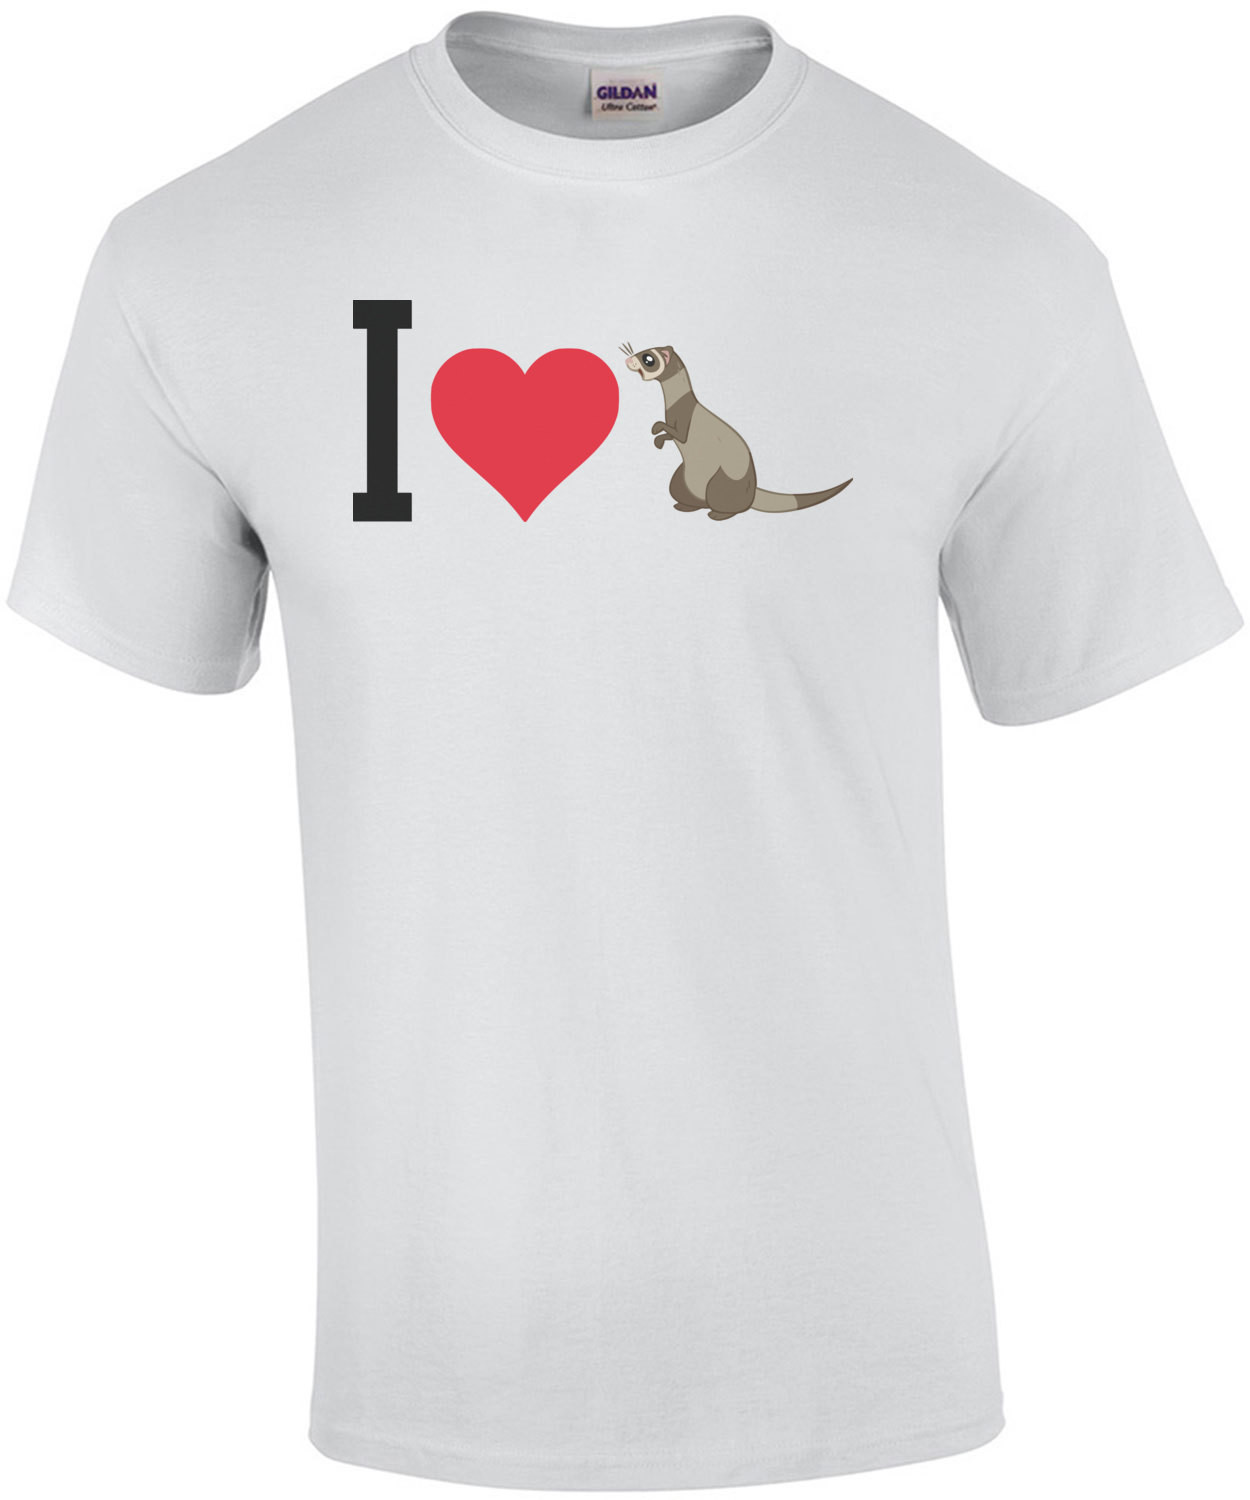 I love (heart) ferrets - ferret t-shirt